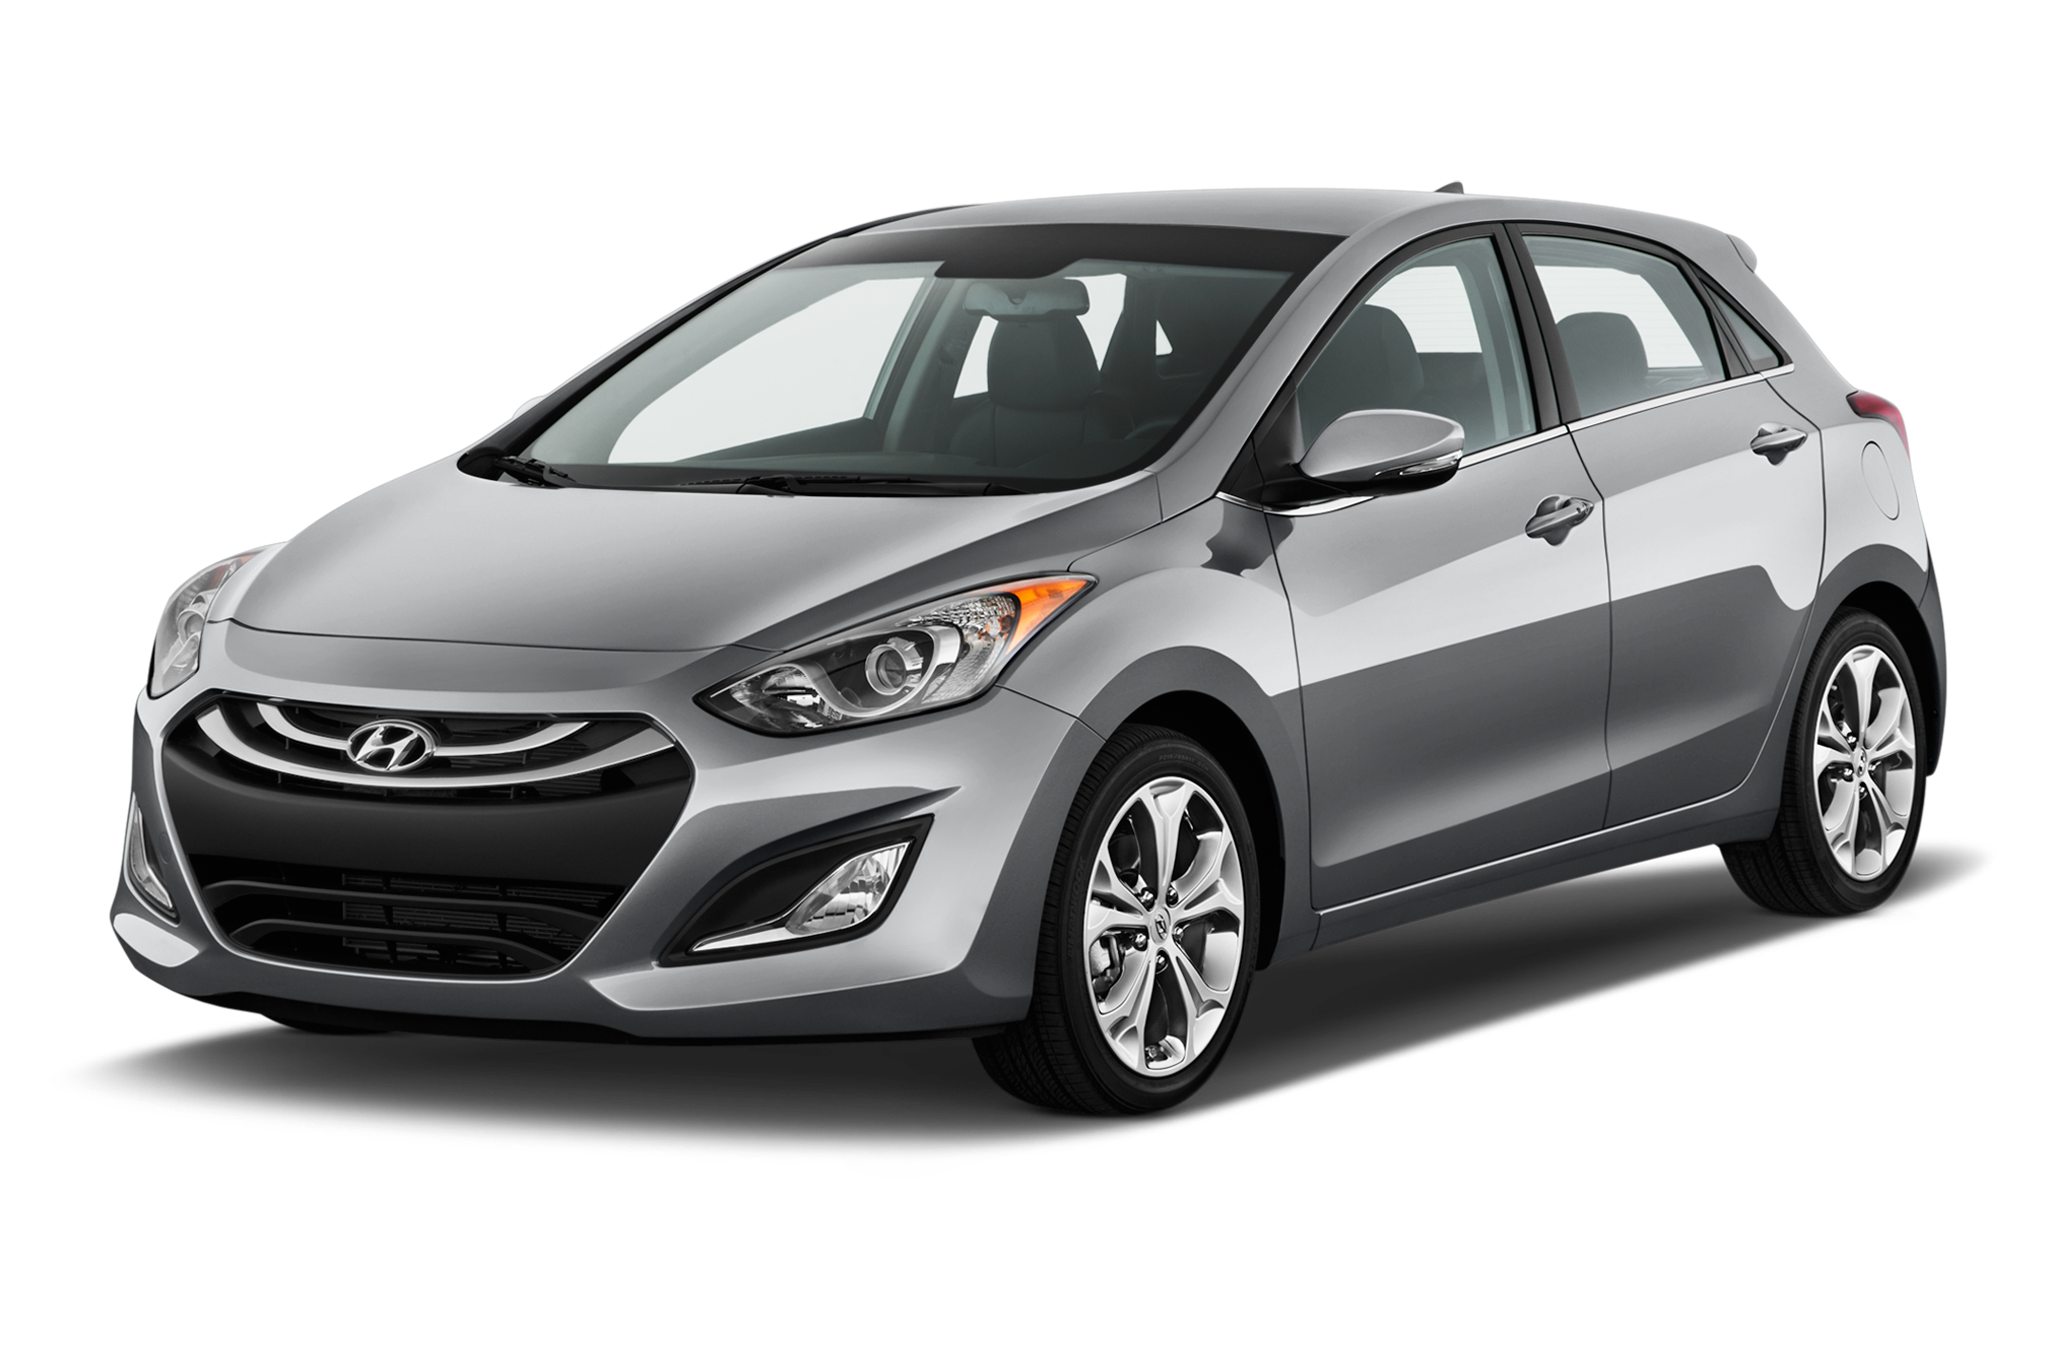 htm owings elantra catonsville ext windy hyundai near the new baltimore blue md s under hood for sale gt sea